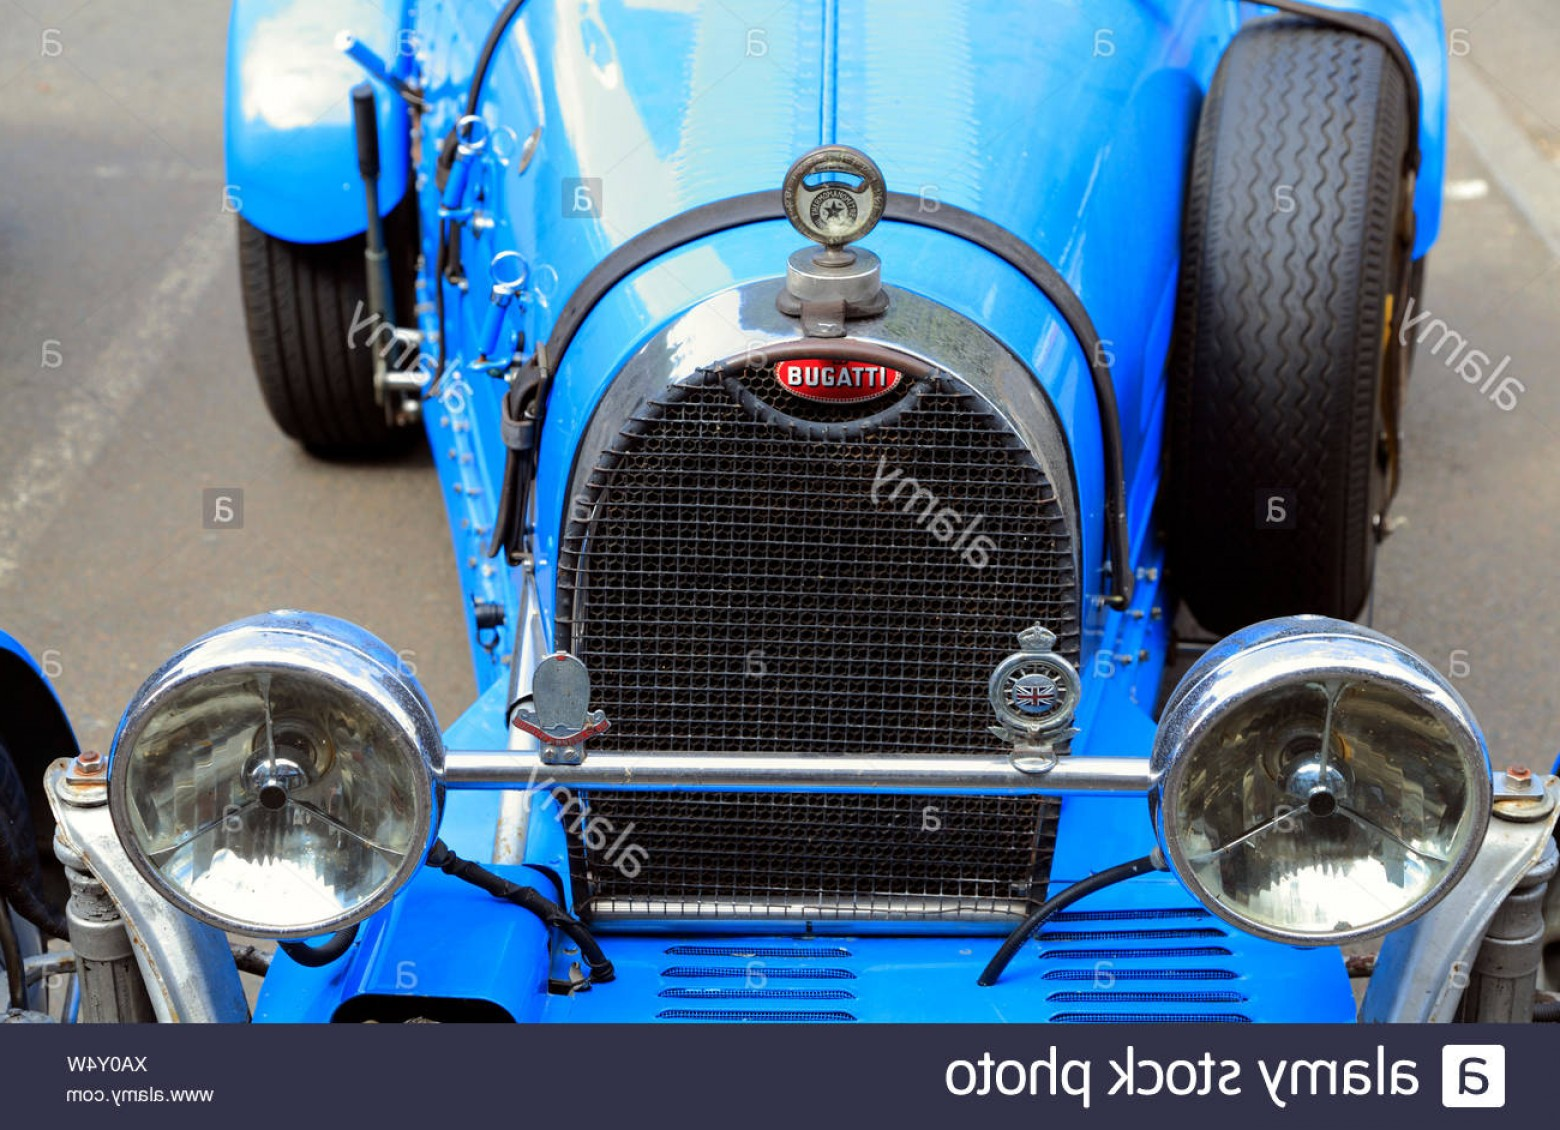 Race Car Grill Vector: Bugatti Racing Car Vintage Racing Car Vehicle Motor Detail Radiator Grill Image